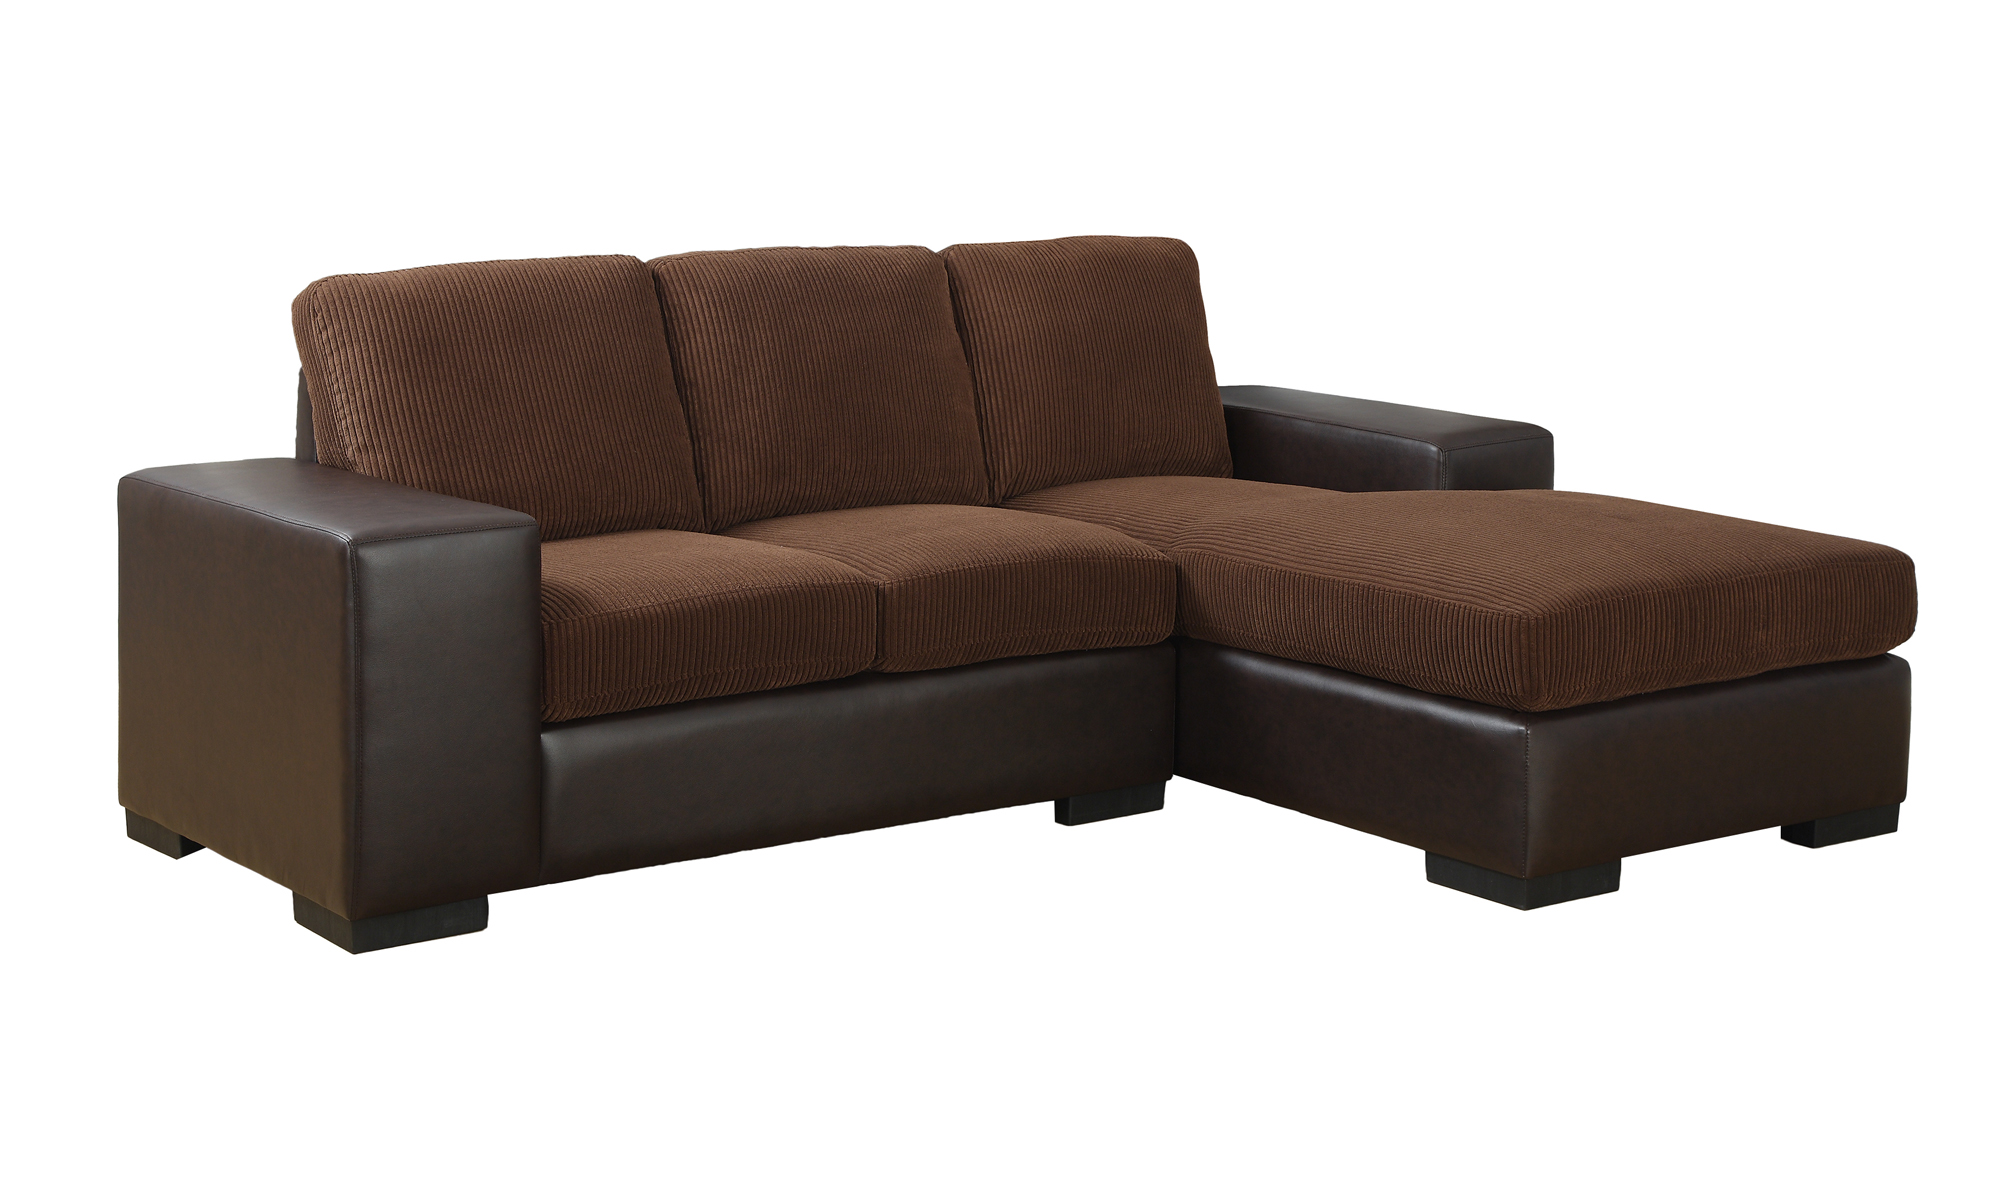 Sofa Lounger Dark Brown Corduroy